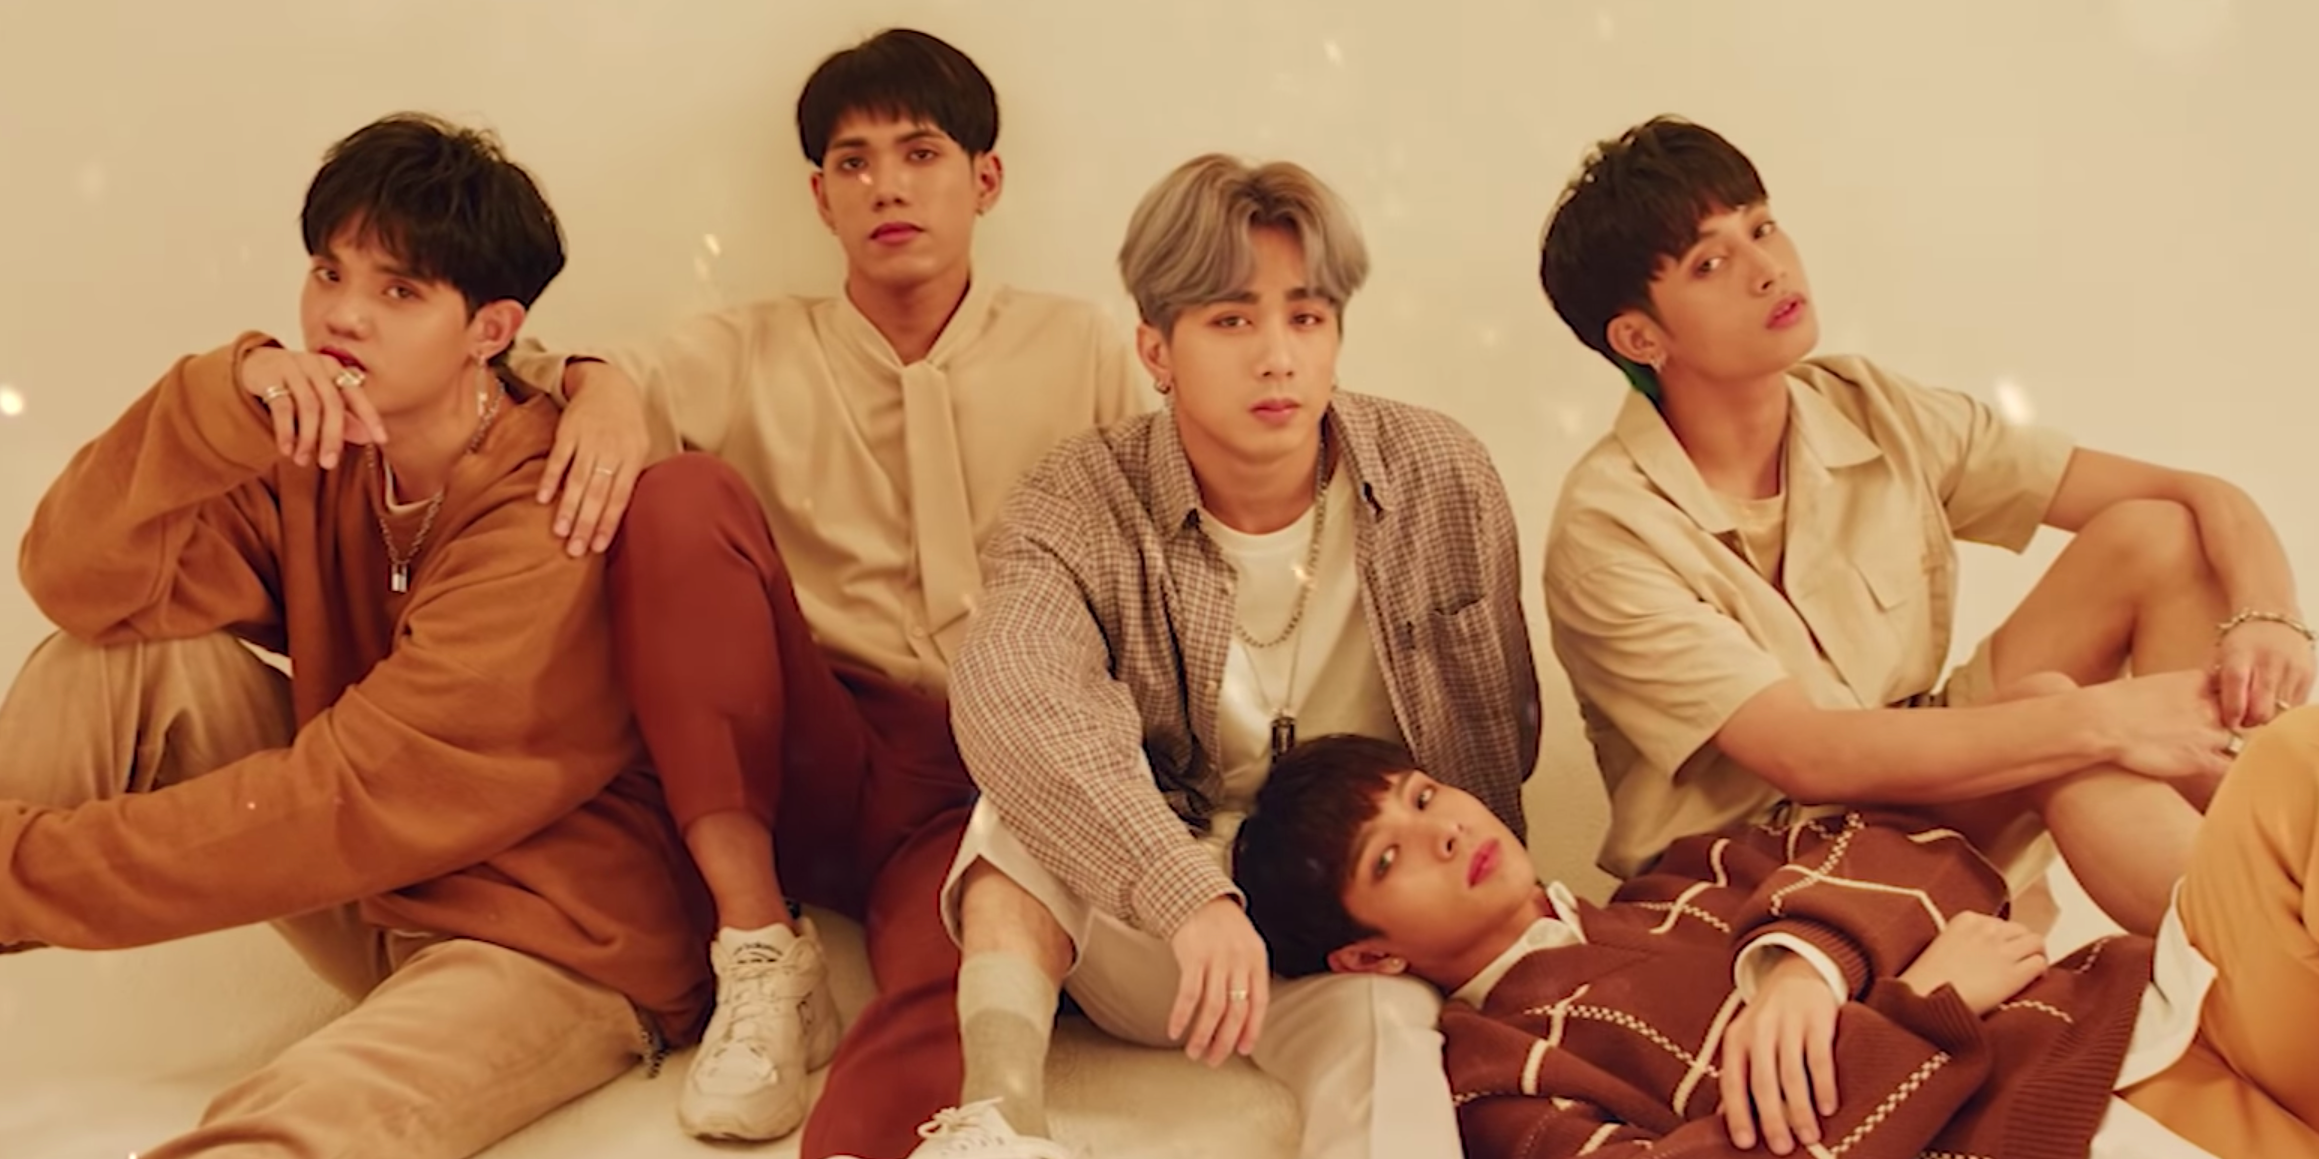 SB19 invite fans to 'Get in the Zone' for their 1st album listening party